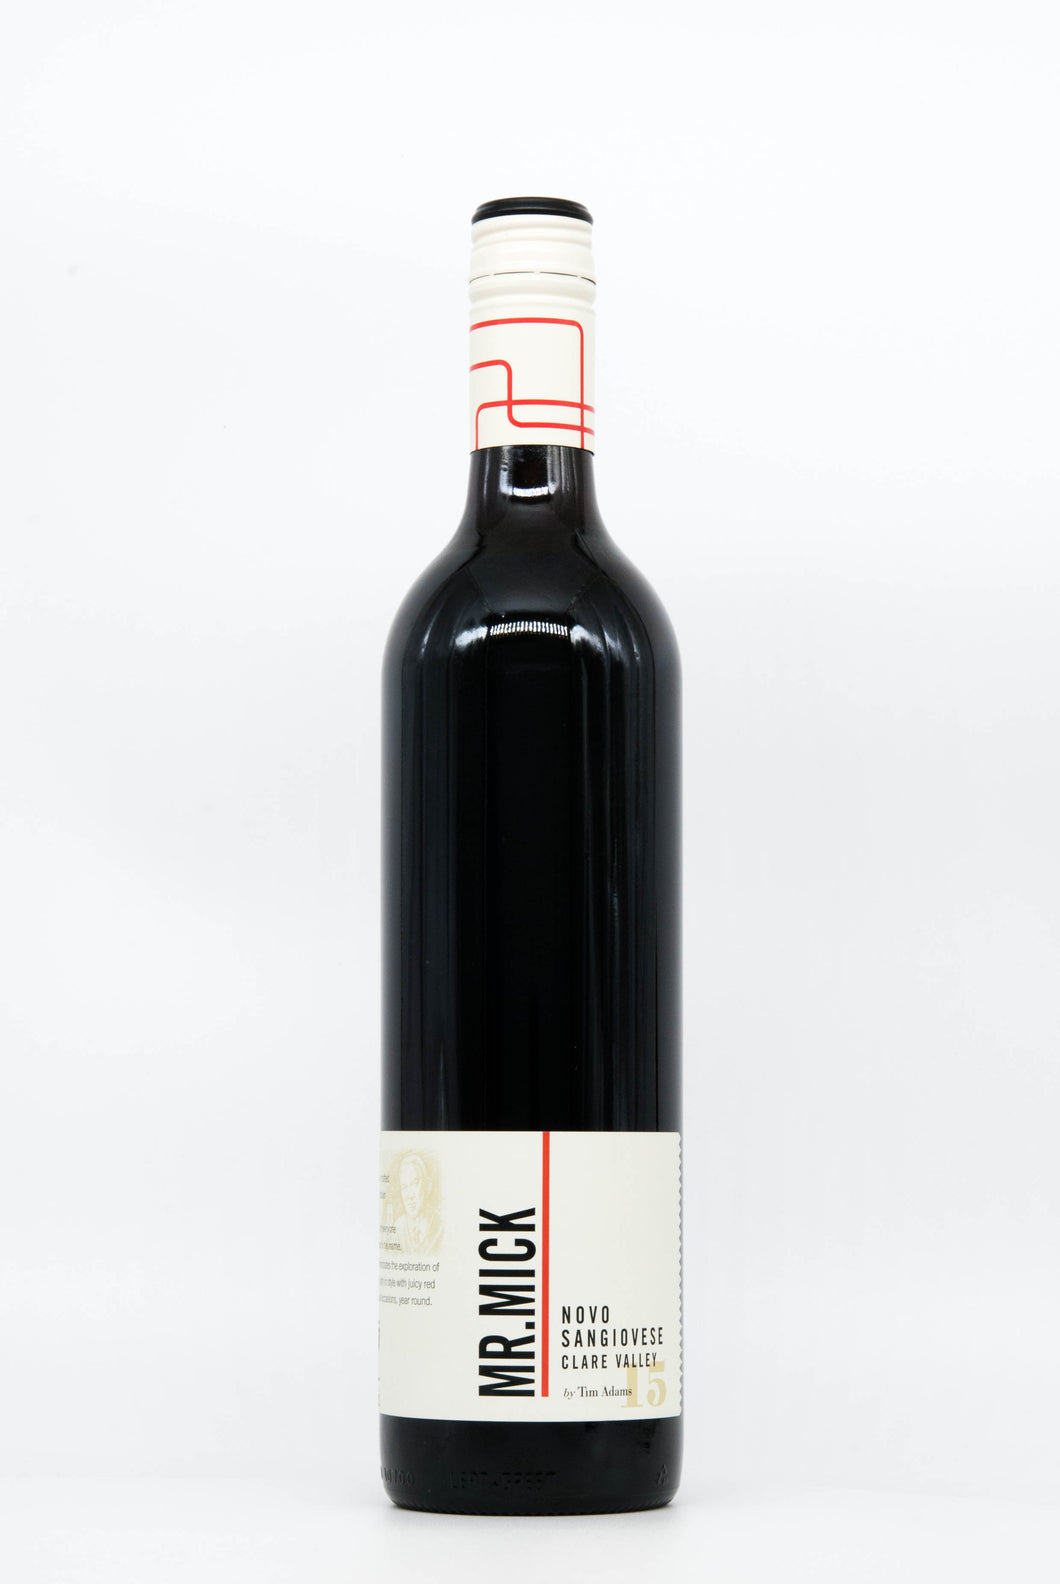 MR MICK - Novo Sangiovese